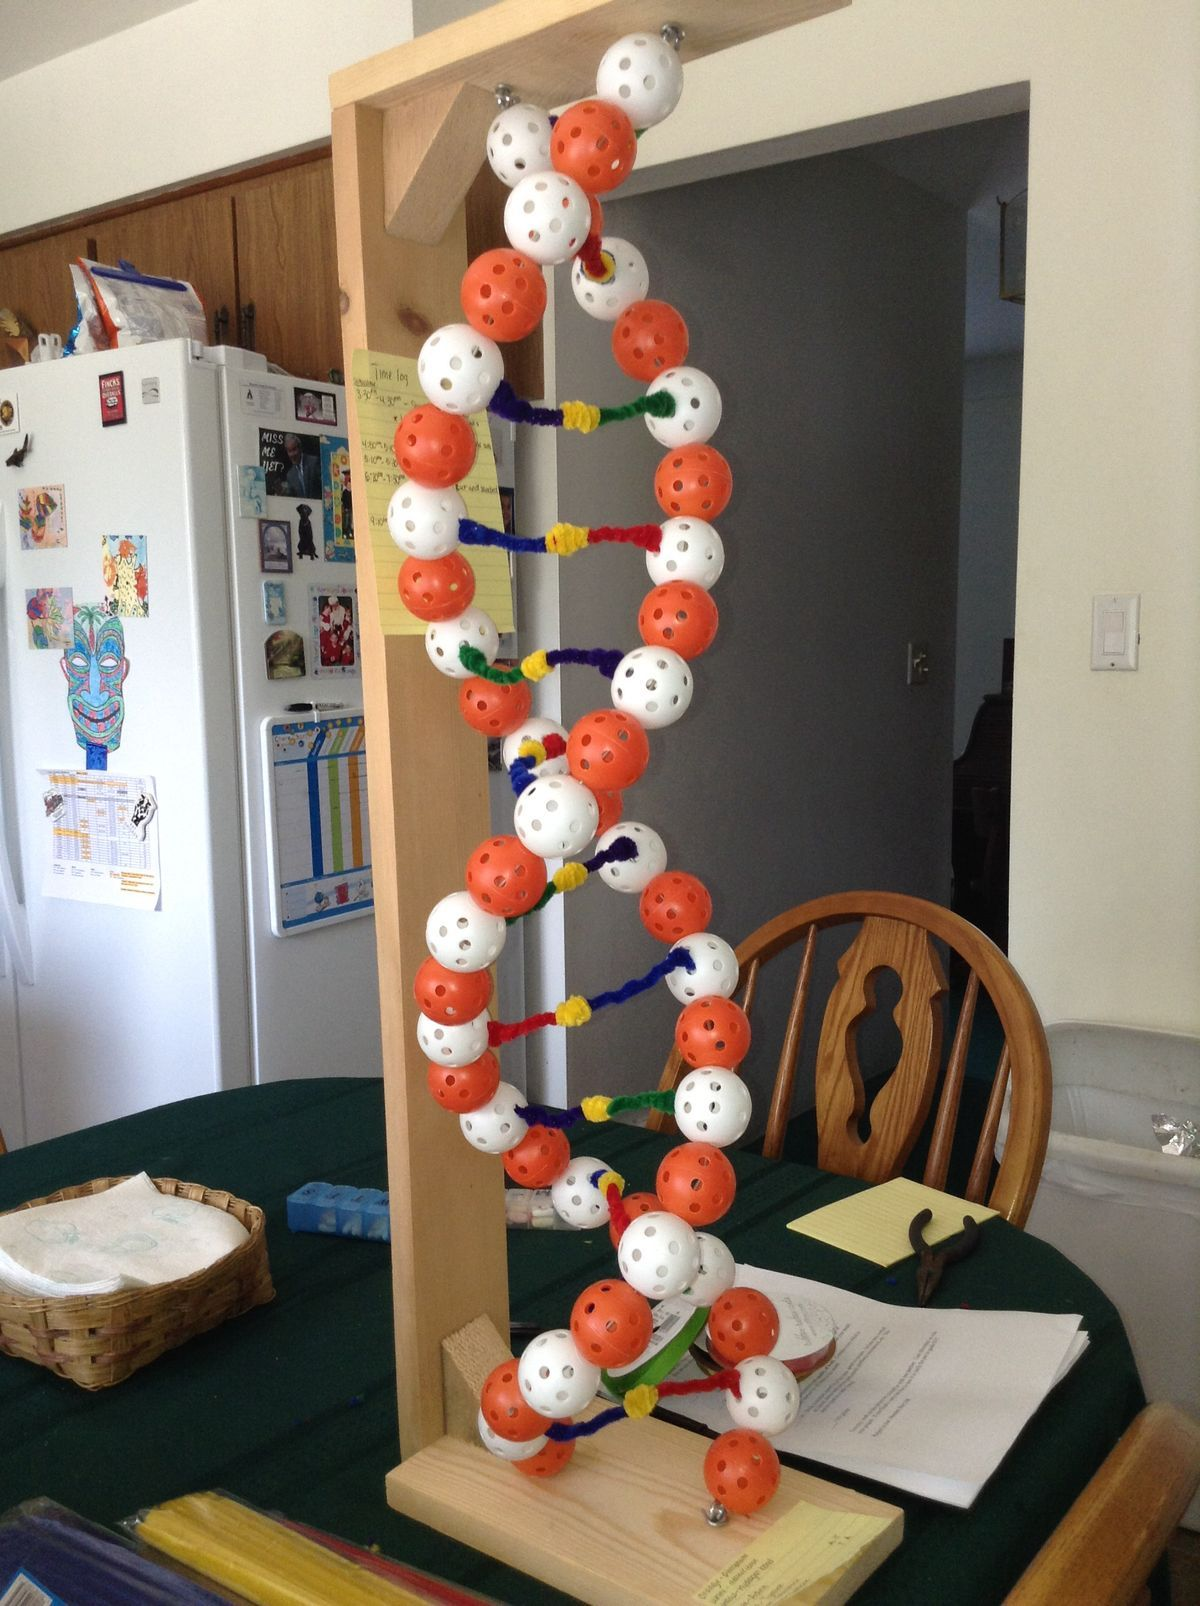 1000 images about dna on pinterest double helix lego and 1000 images about dna on pinterest double helix lego and building blocks ccuart Images